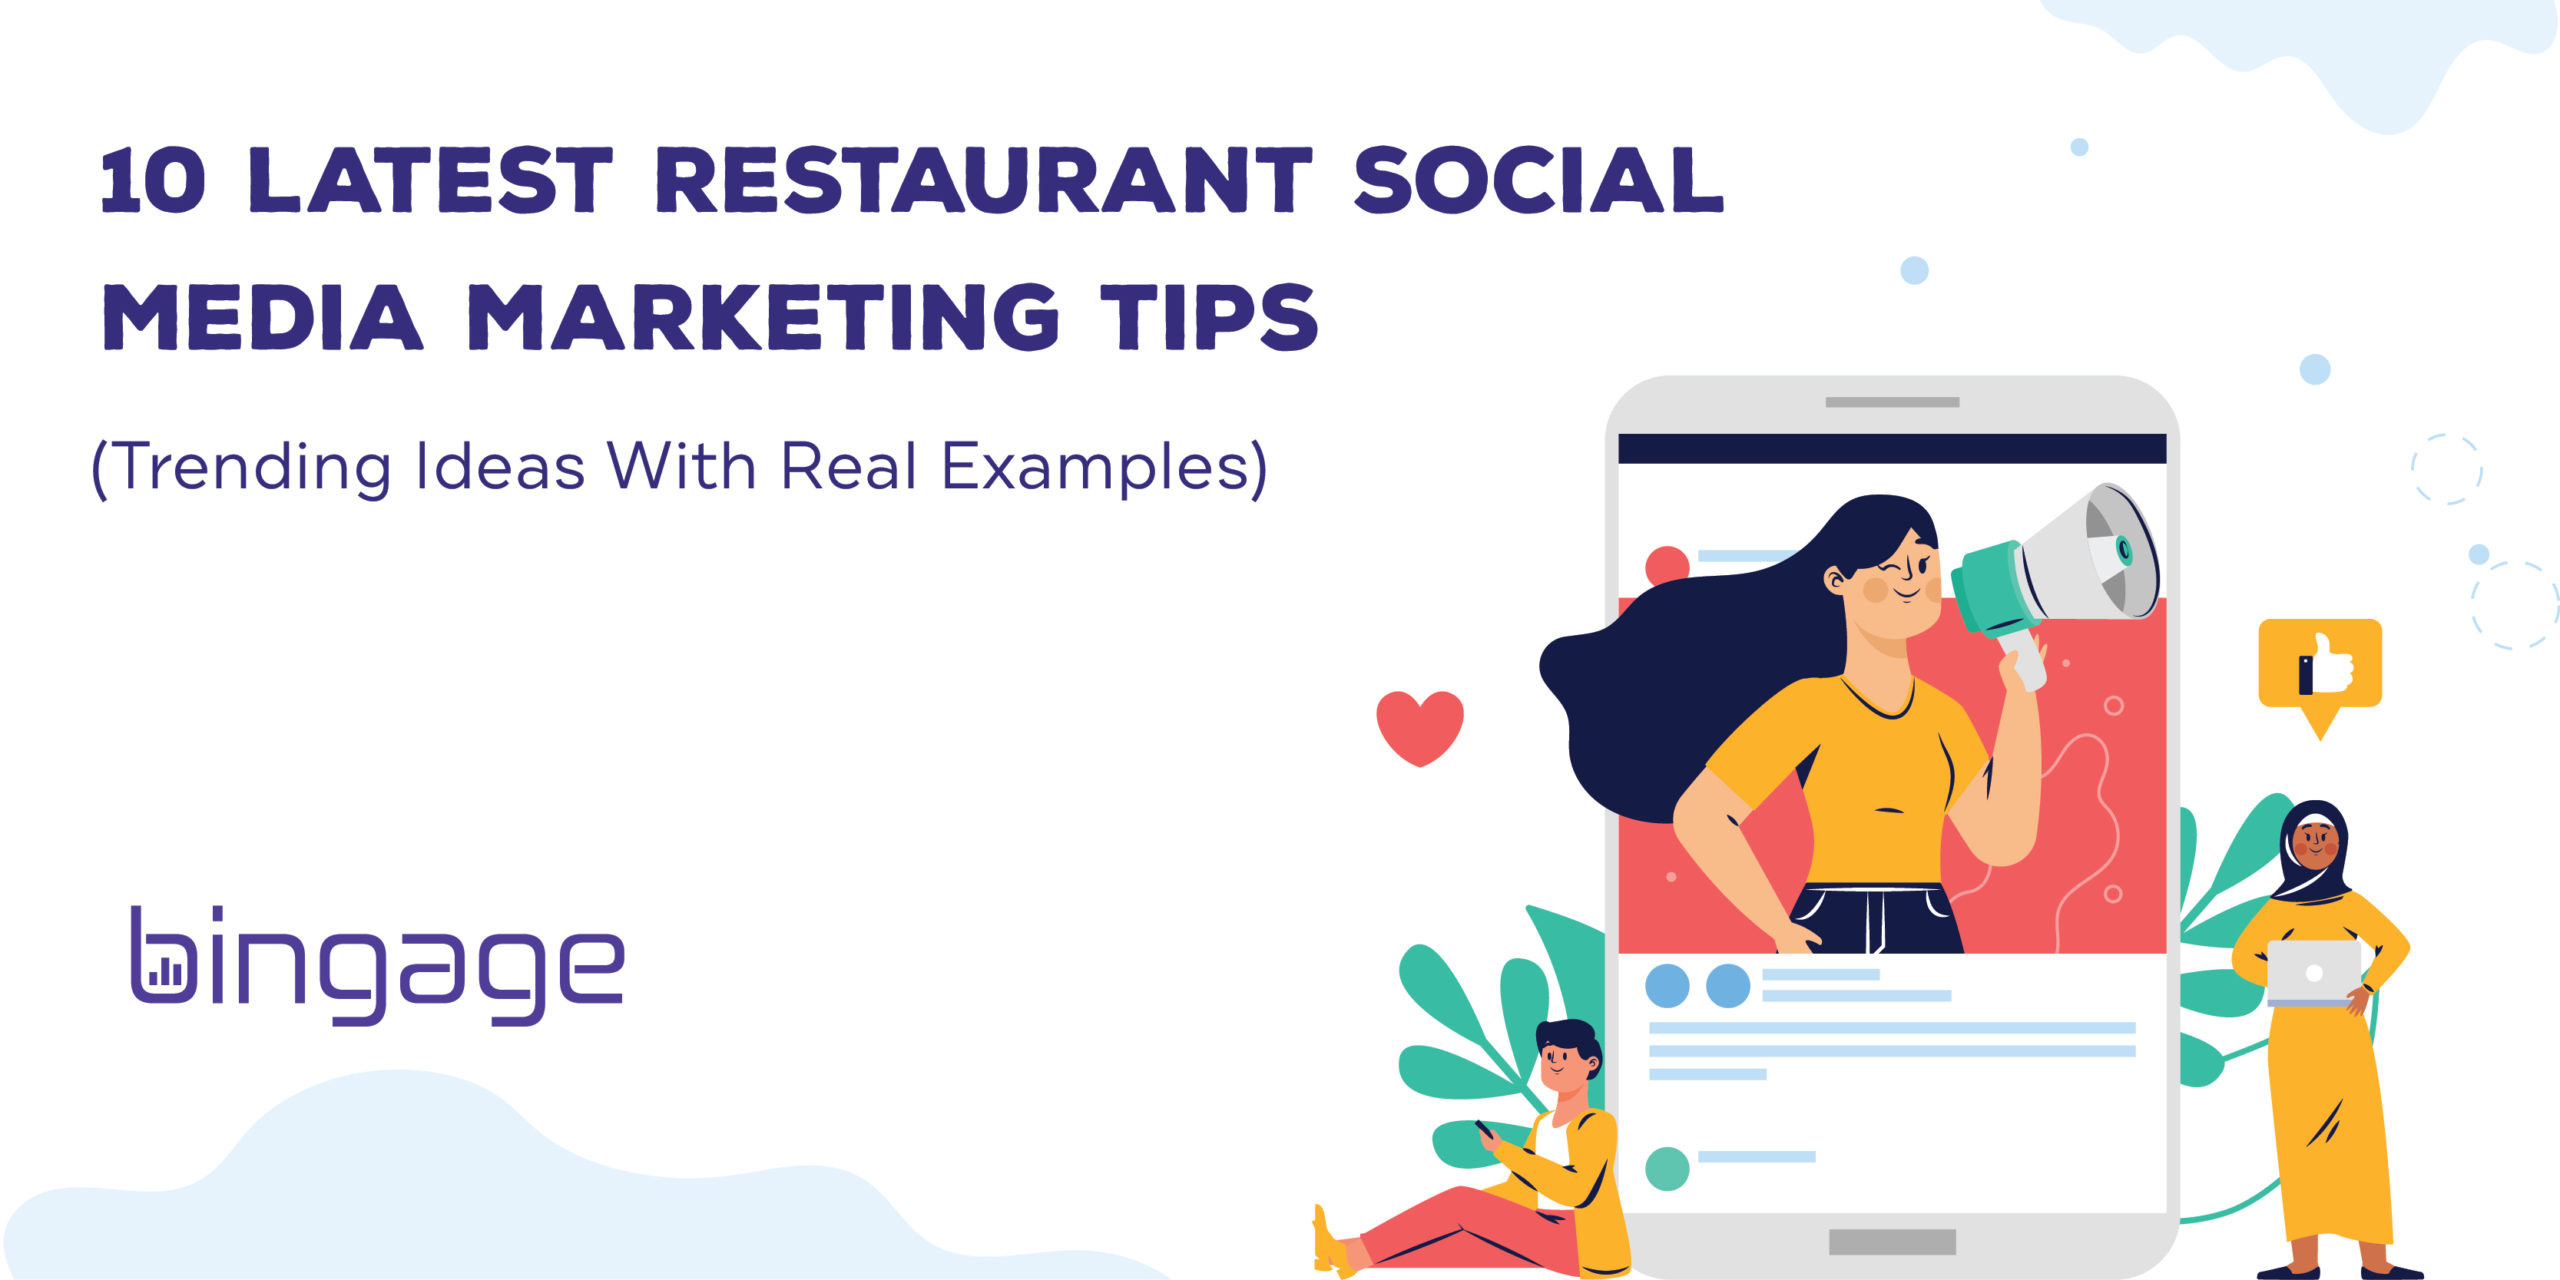 10 Restaurant Social Media Marketing Tips (With Fresh Content Ideas)